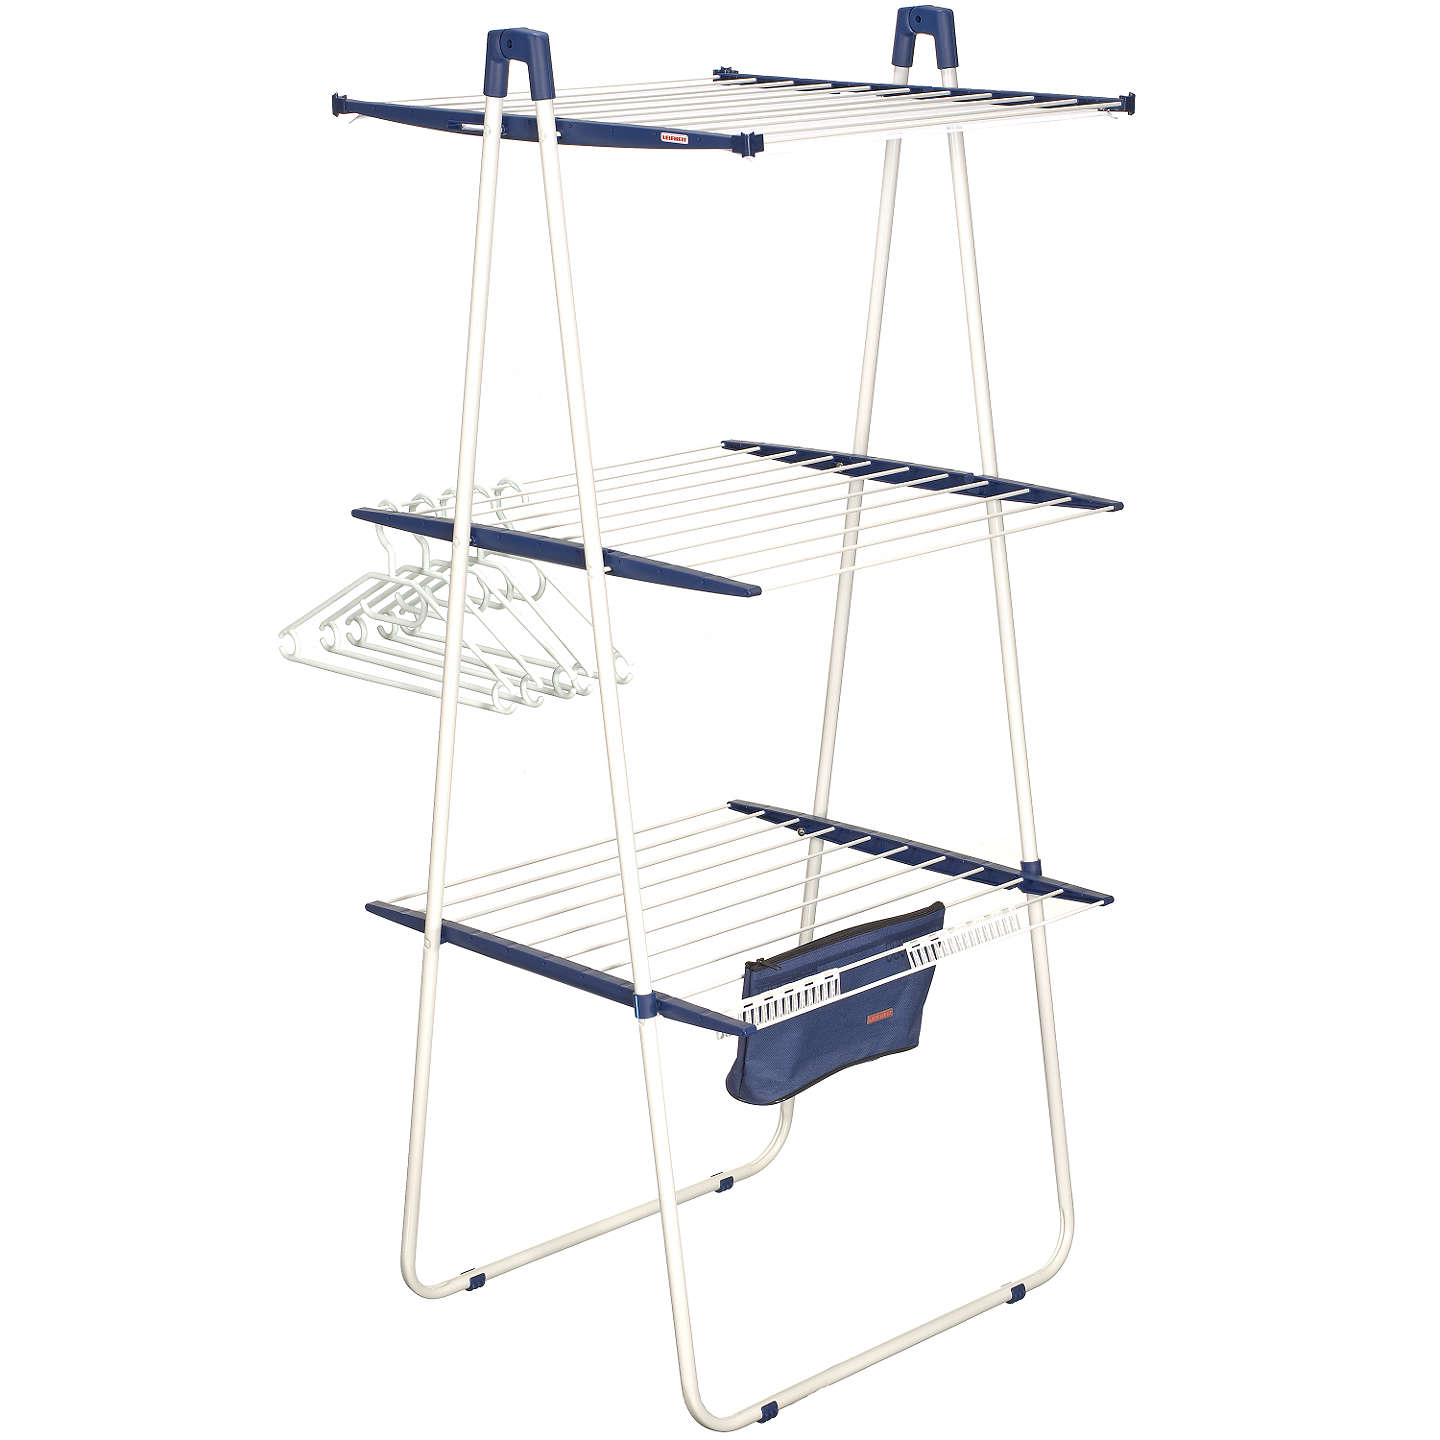 Buyleifheit Pegasus Tower 200 Clothes Airer Online At Johnlewiscom